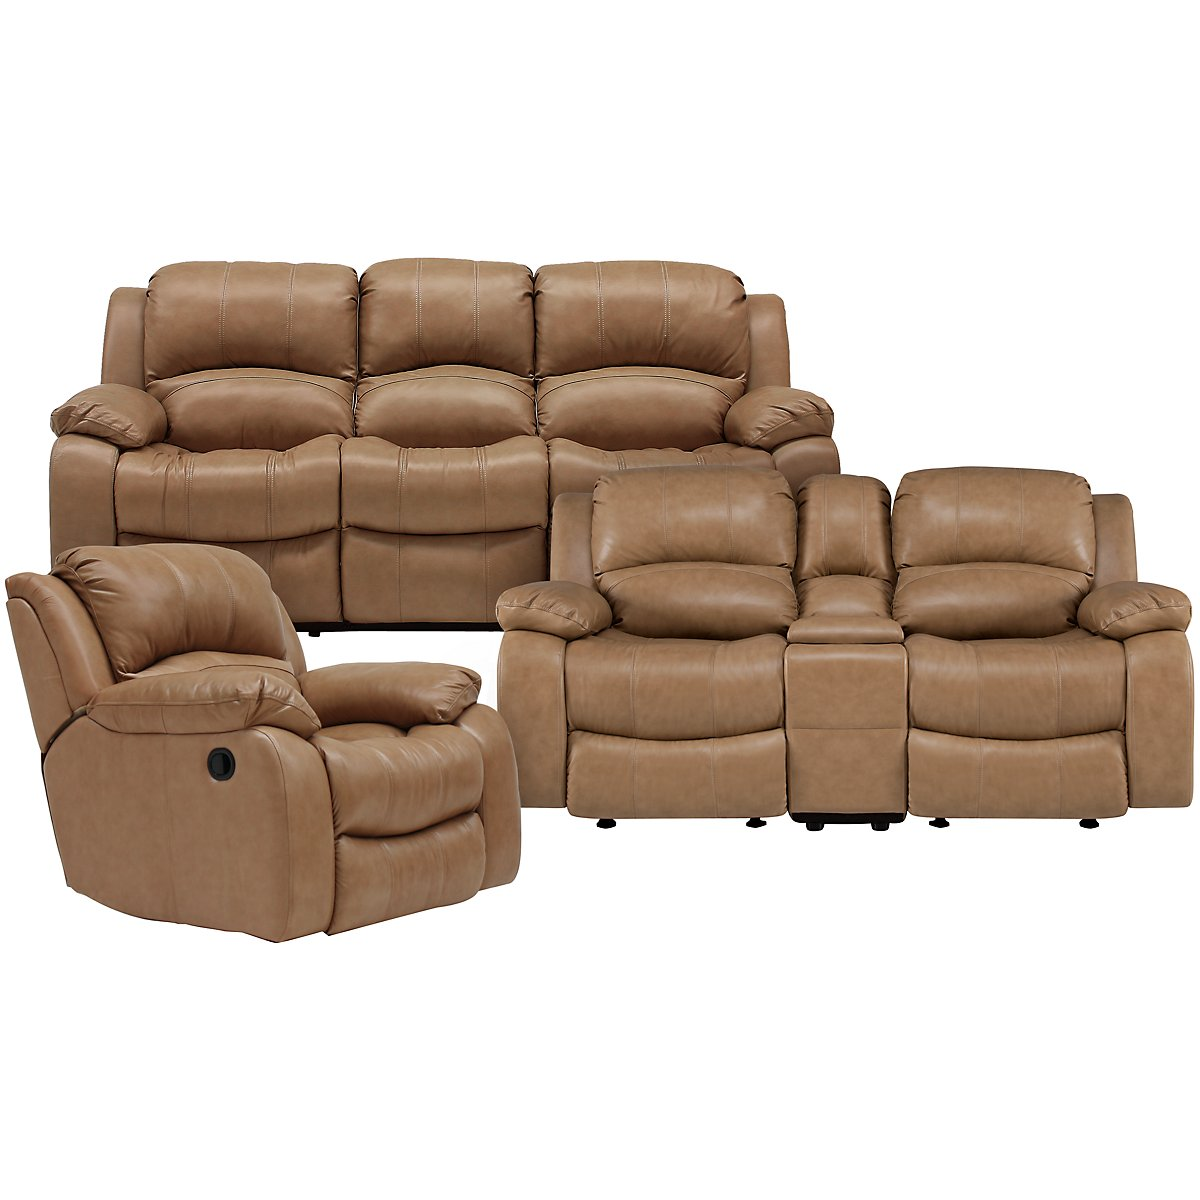 Tyler3 Dk Taupe Leather & Vinyl Power Reclining Living Room